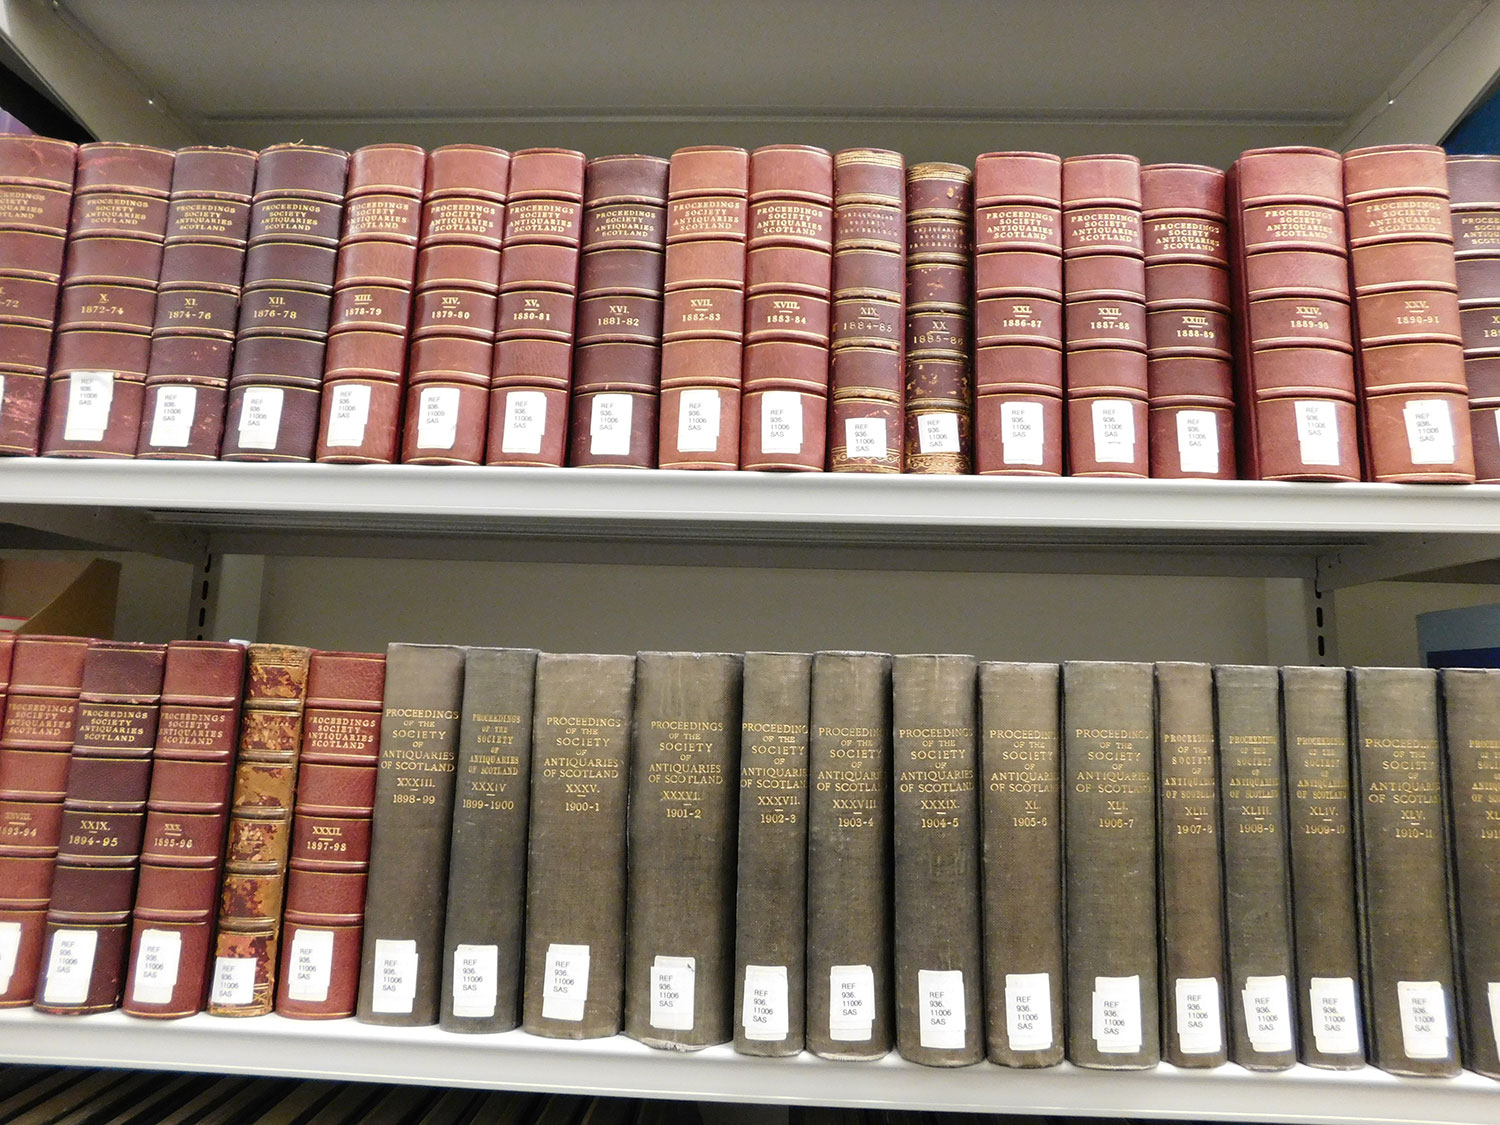 Proceedings of the Society of Antiquaries of Scotland in the Research Library which is open to the public © Julie Holder